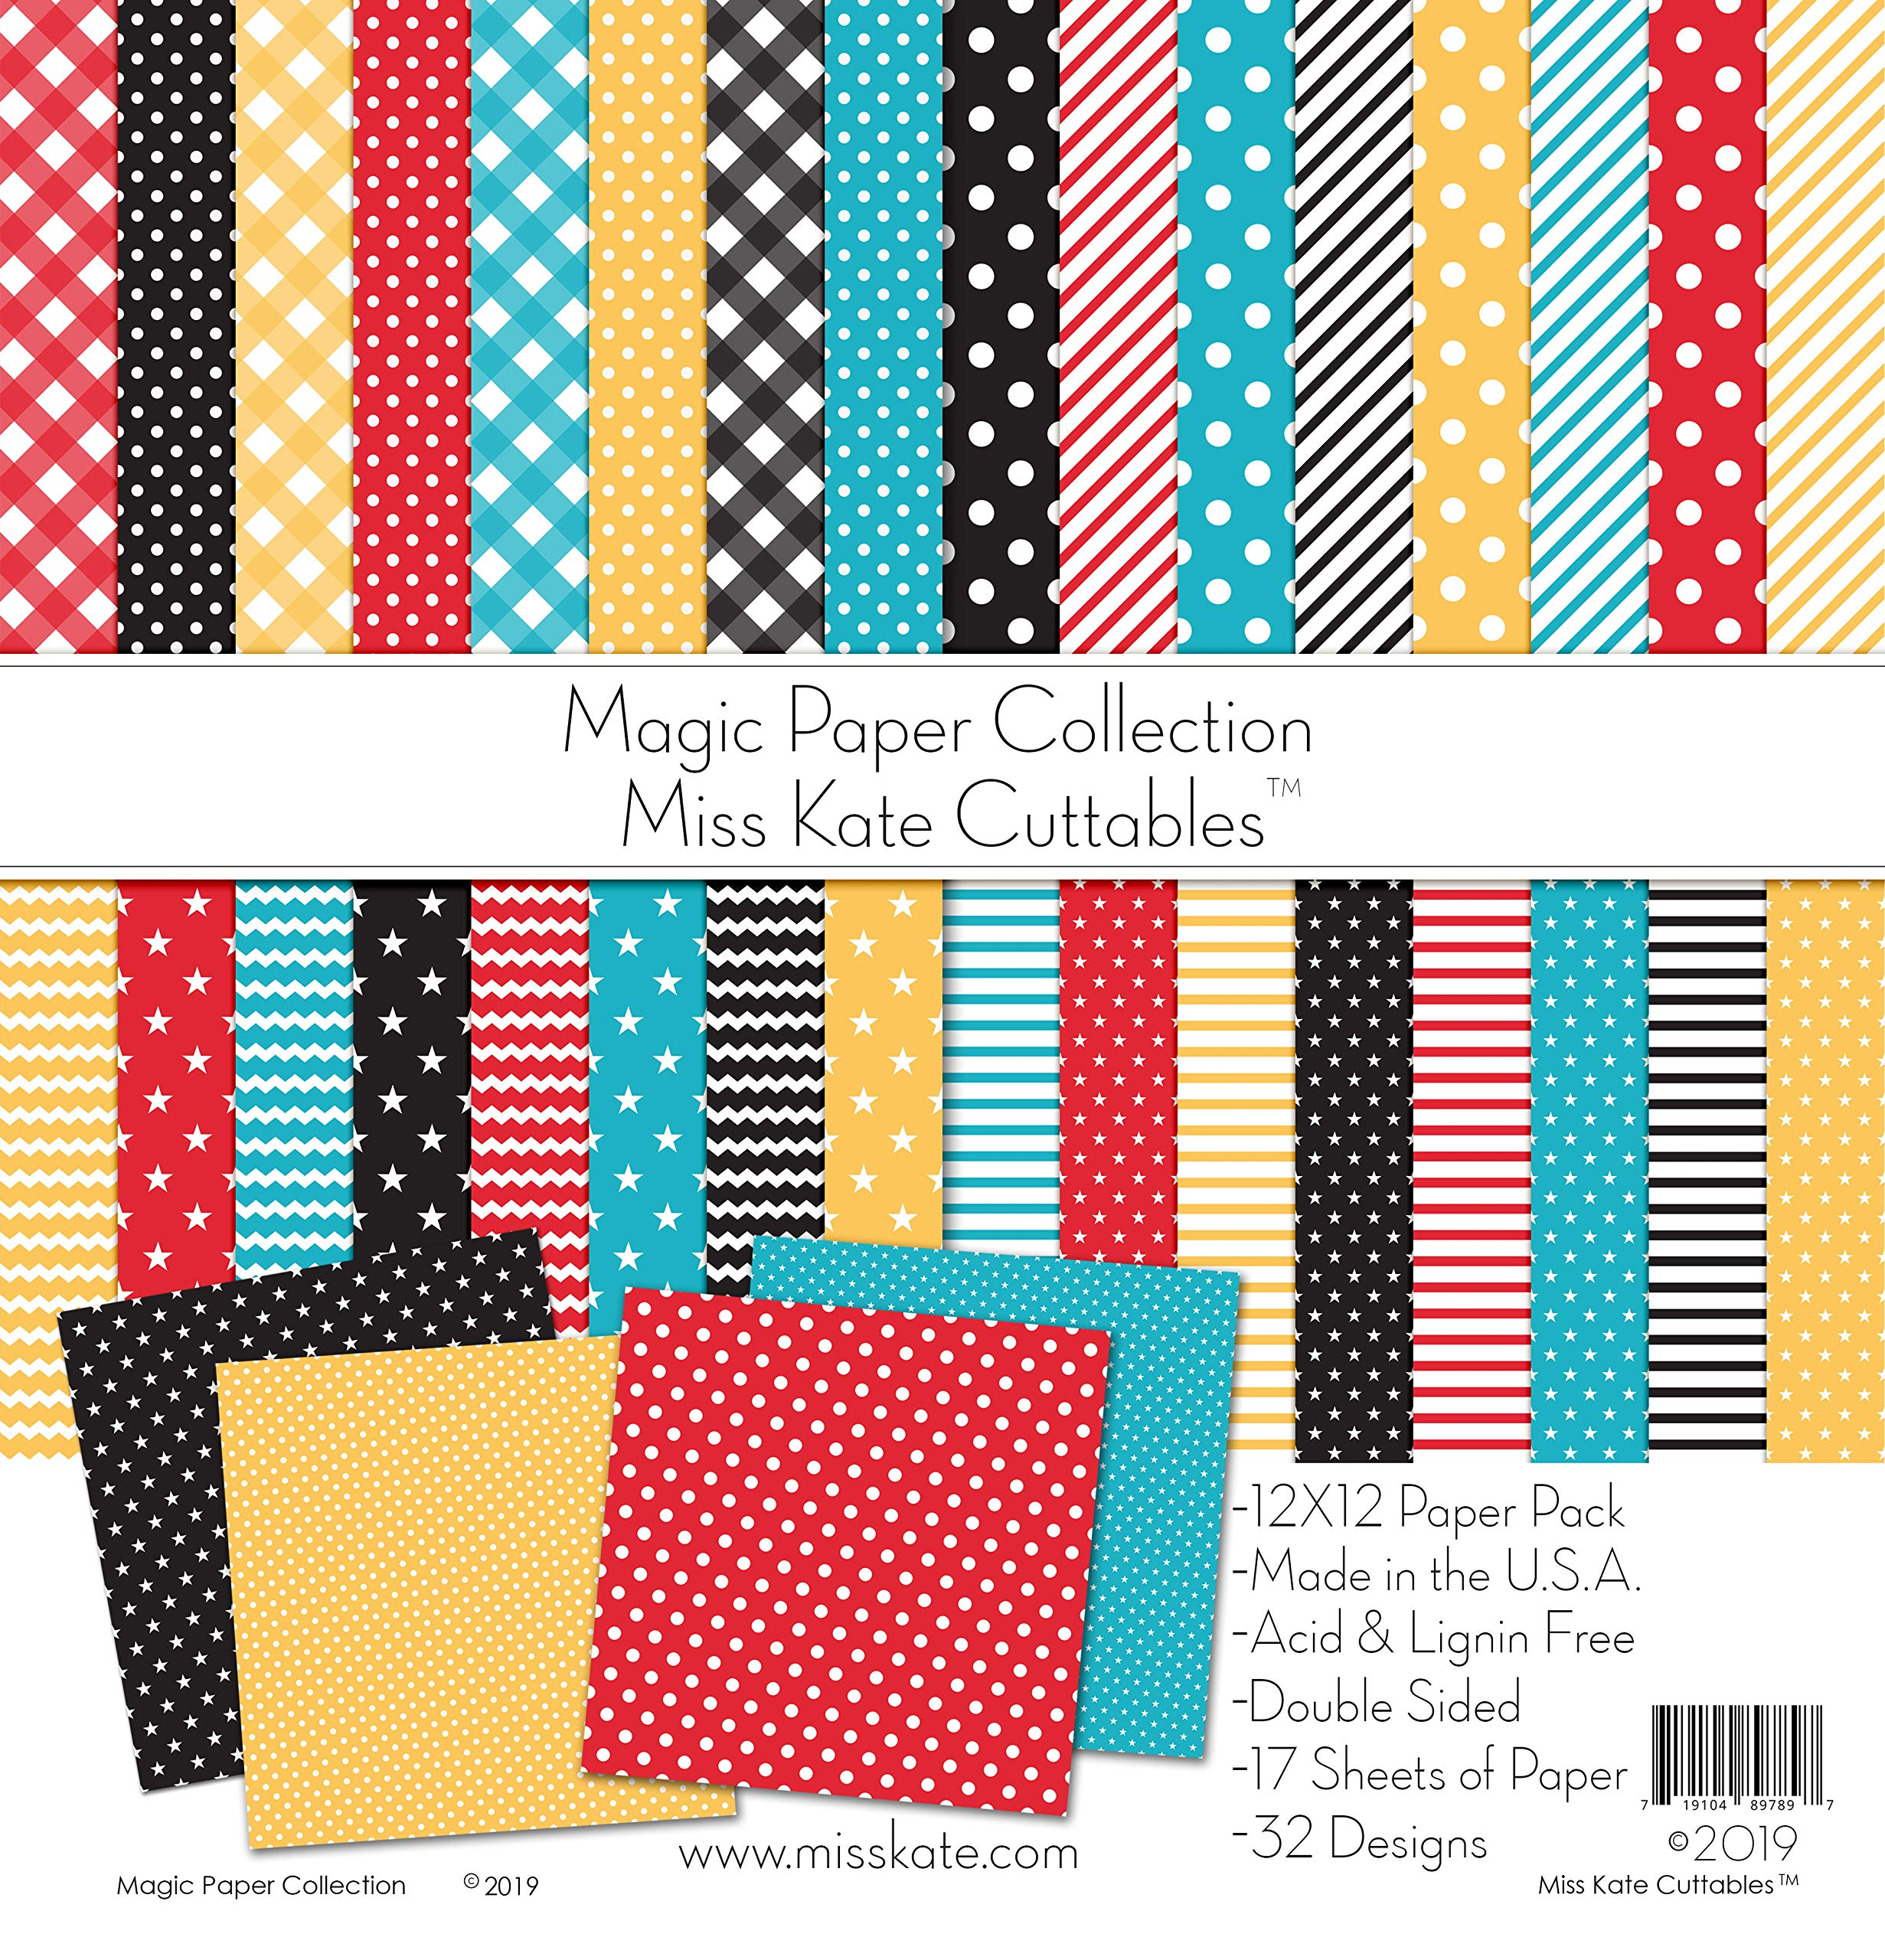 Pattern Paper Pack - Magic Basics - for Disney - 17 Double-Sided 12''x12'' Collection Includes 34 Patterns - Scrapbooking Card Making Crafting - by Miss Kate Cuttables by Miss Kate Cuttables